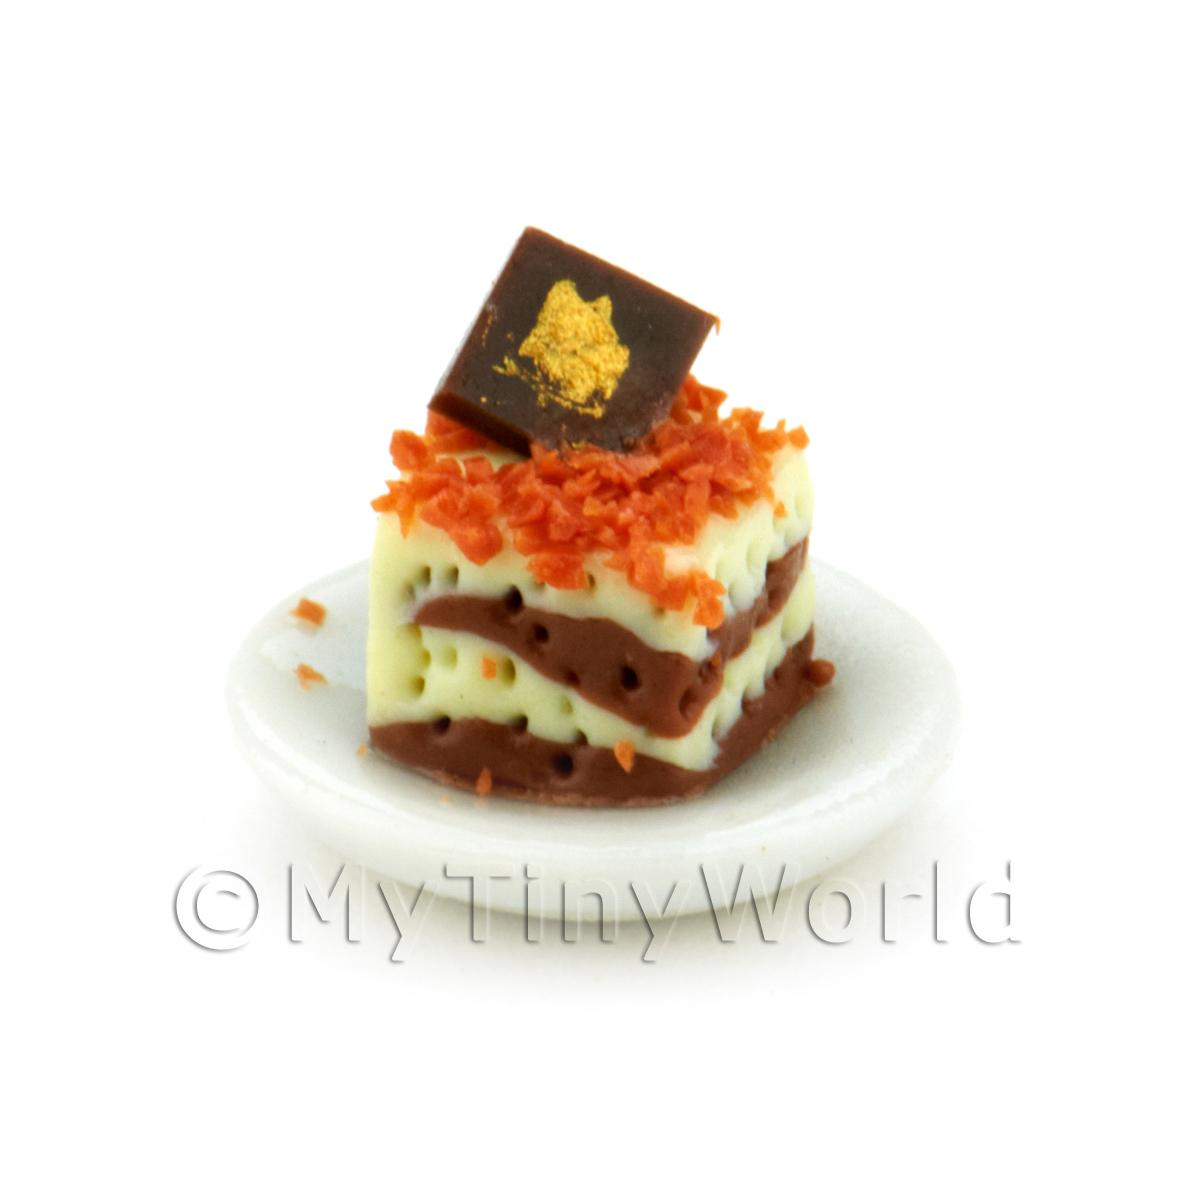 Miniature Mixed Chocolate Caramel Square